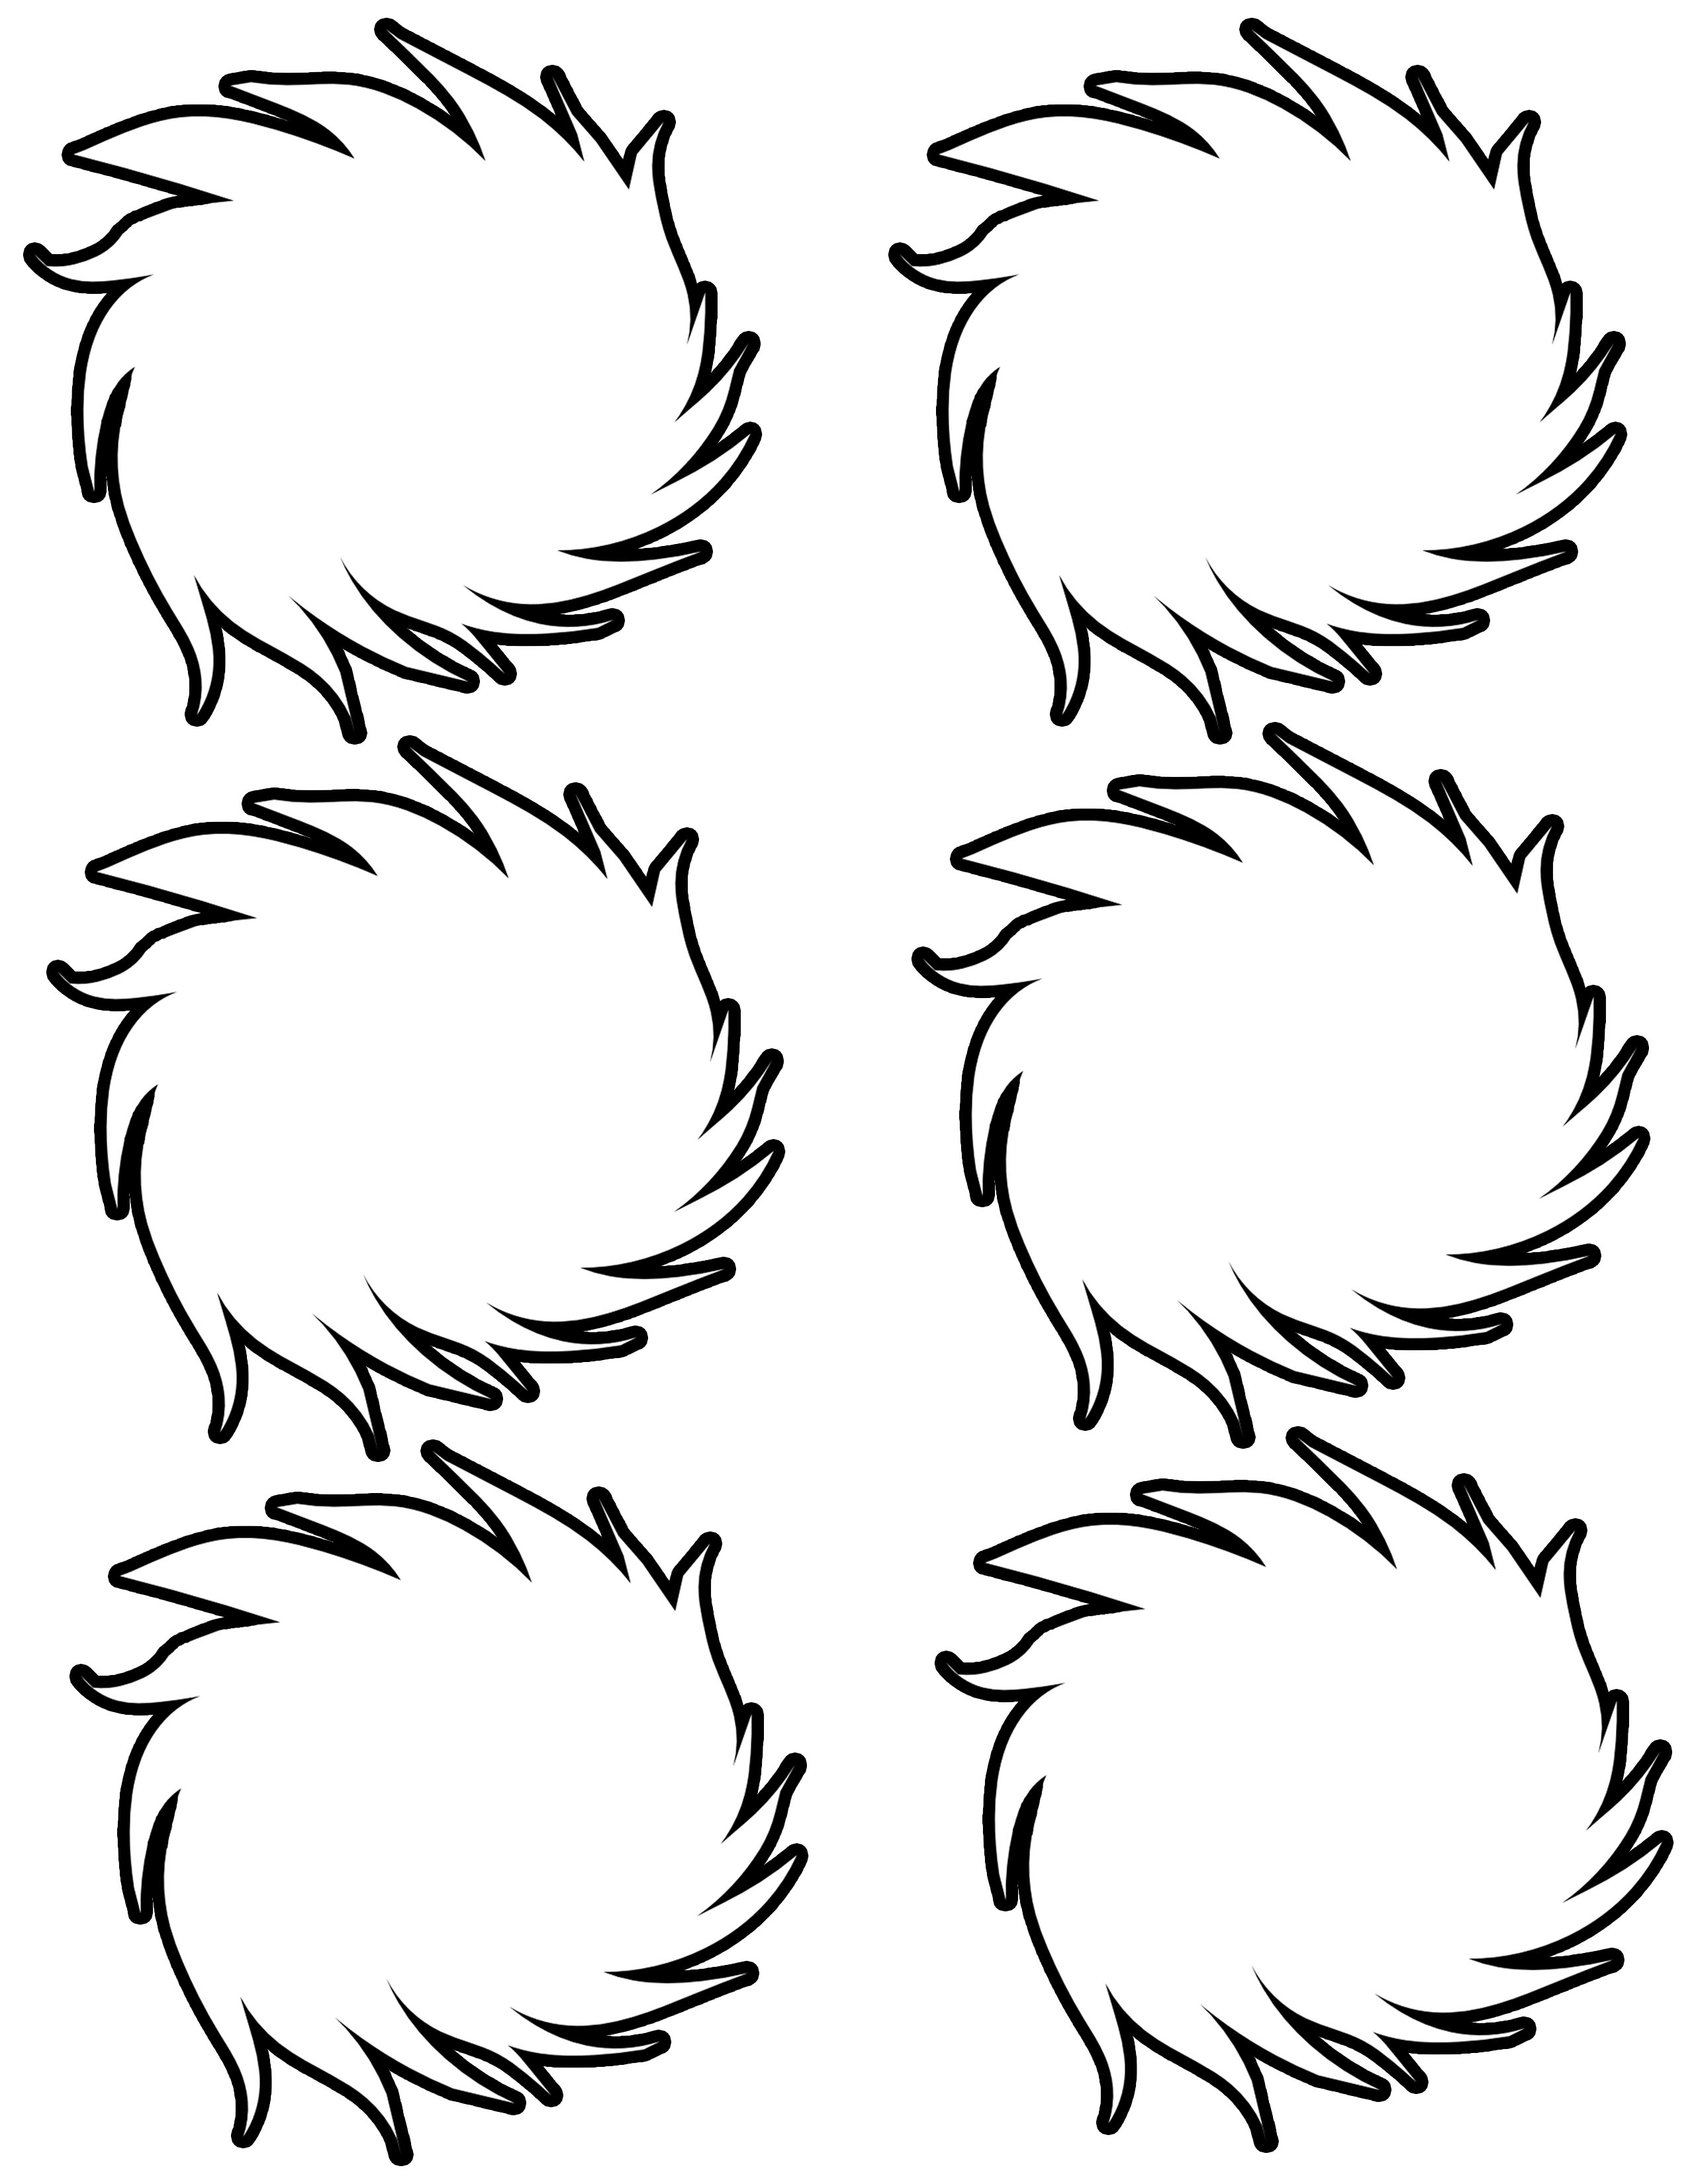 graphic regarding Lorax Template Printable identify The simplest absolutely free Lorax coloring webpage photos. Obtain in opposition to 102